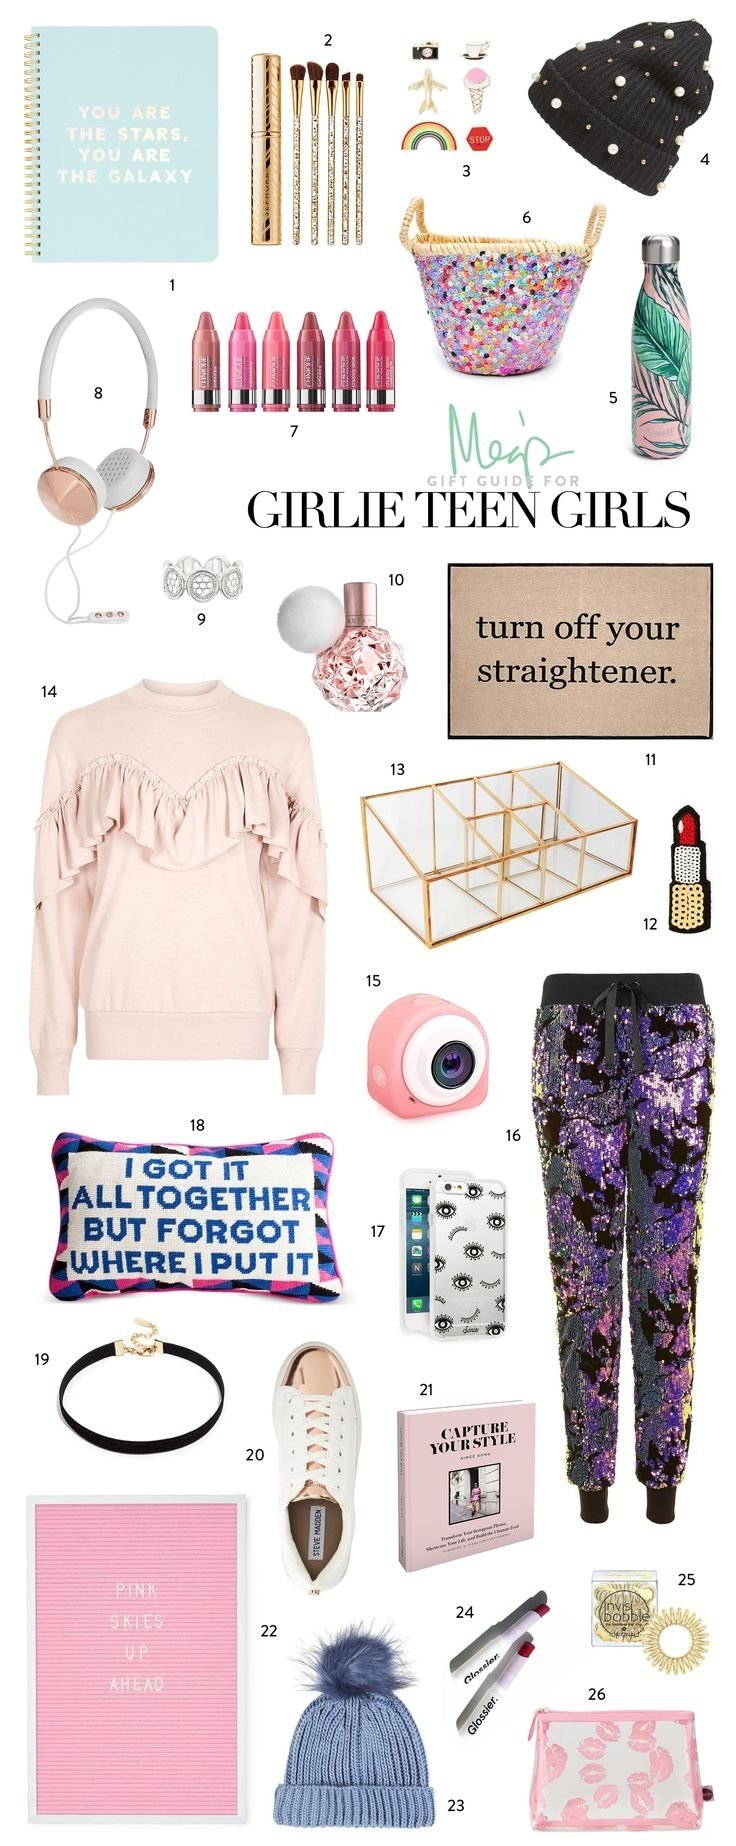 10 Stylish Gift Ideas For 16 Year Old Daughter Majestic Design Christmas Gifts